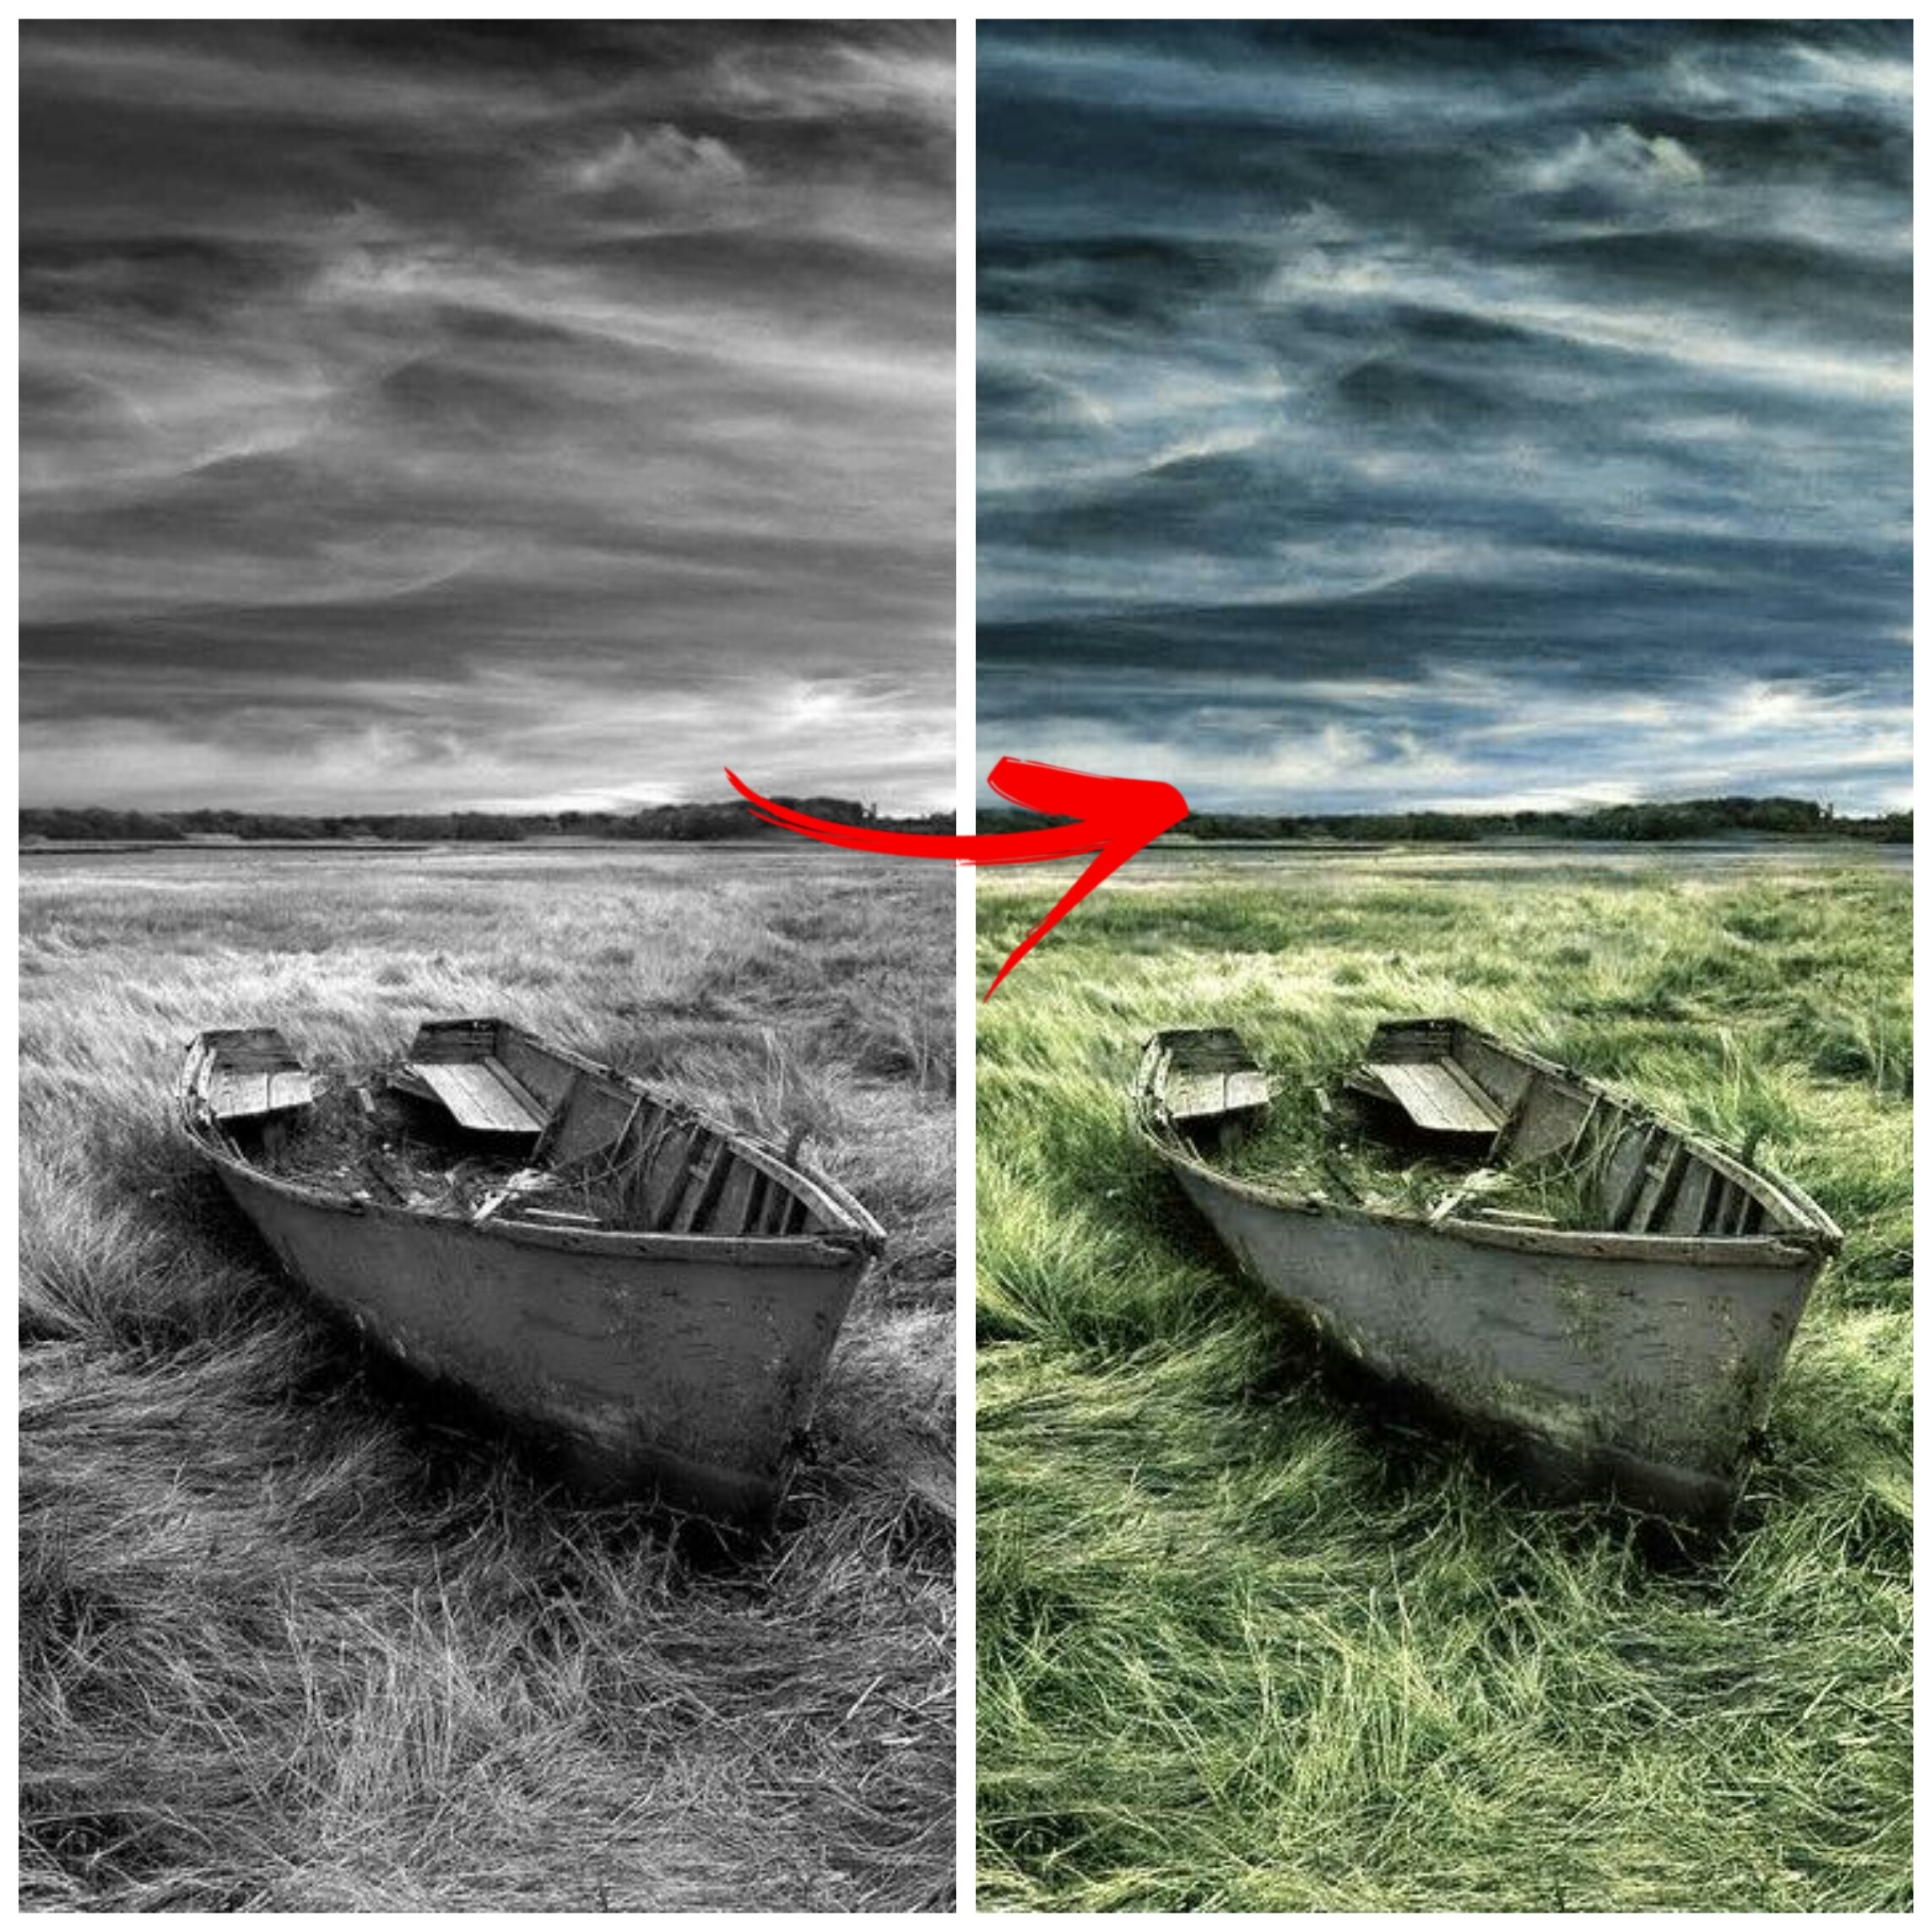 I WIll Colour Your B&W Image To Be a Realistic Image